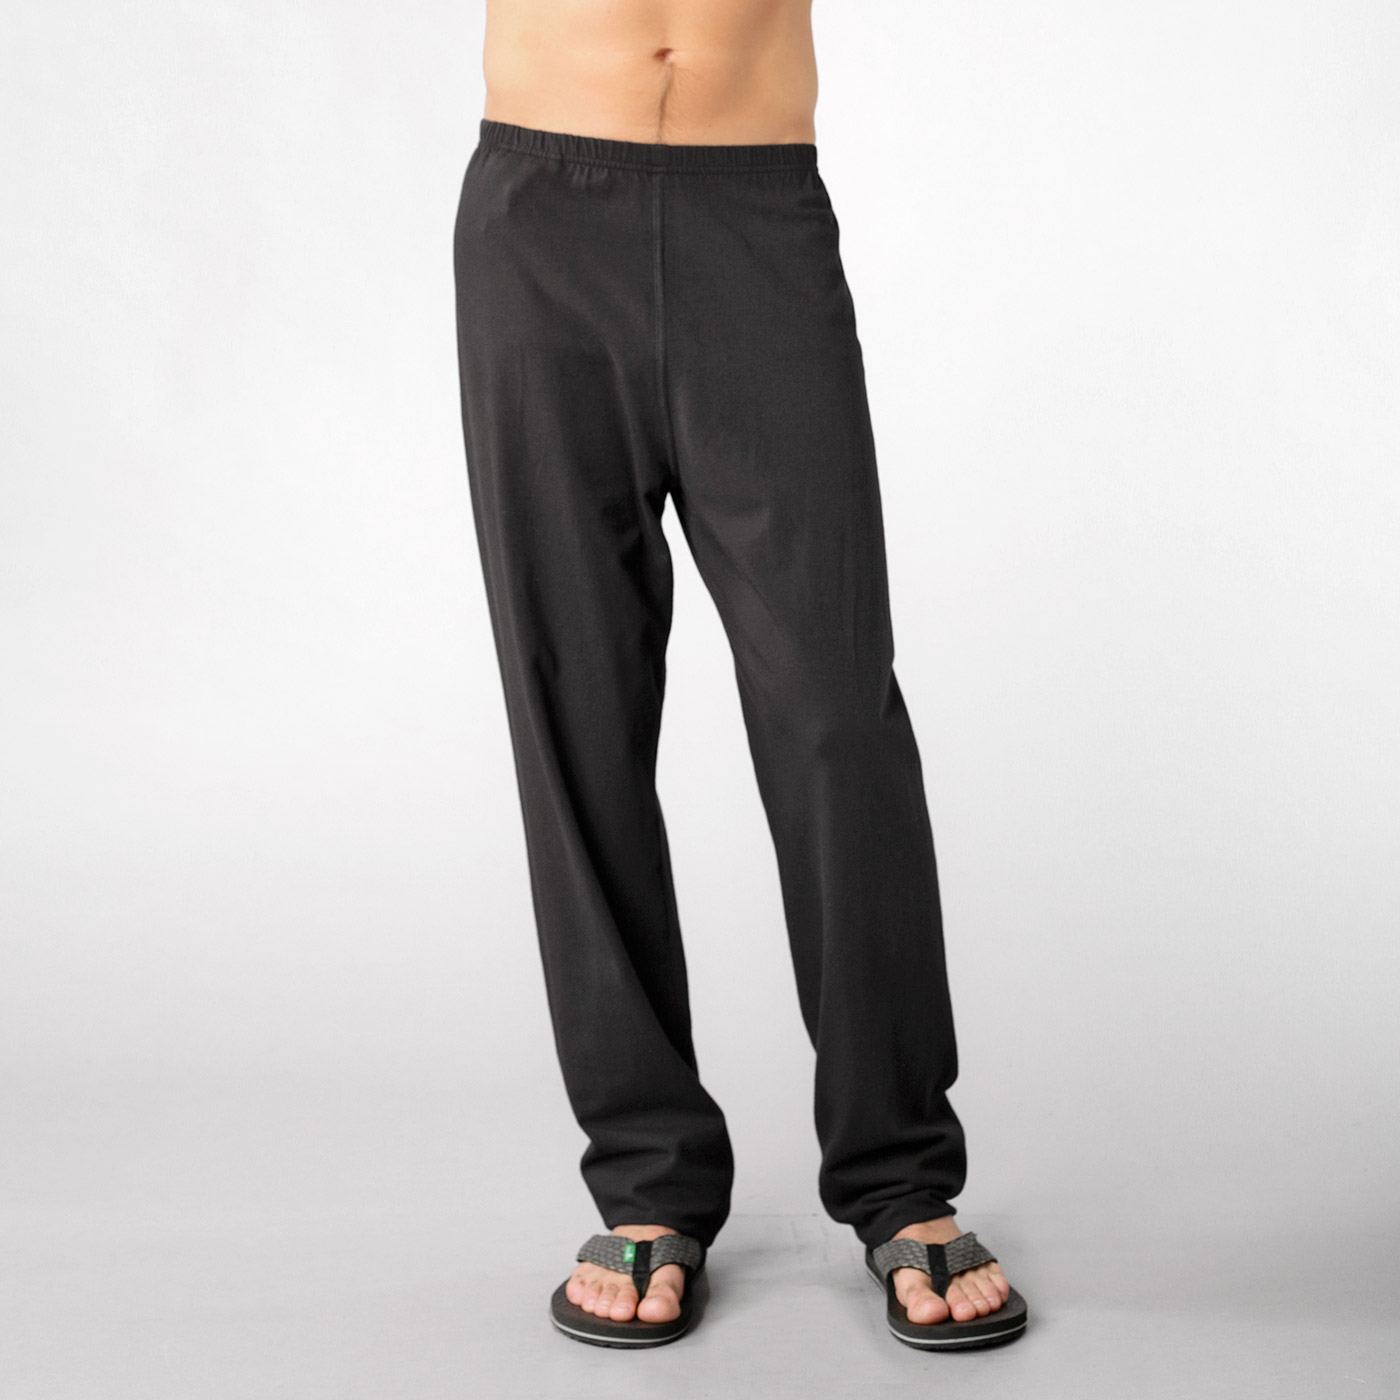 While you might see a lot of men sporting shorts in yoga class, there is a reason for yoga pants. In yoga, whether it's hot or not, pants work to absorb the sweat, so when you get into an arm balance, you can hold it for longer without the sweat on your knees or legs causing your arms to slide off of them.